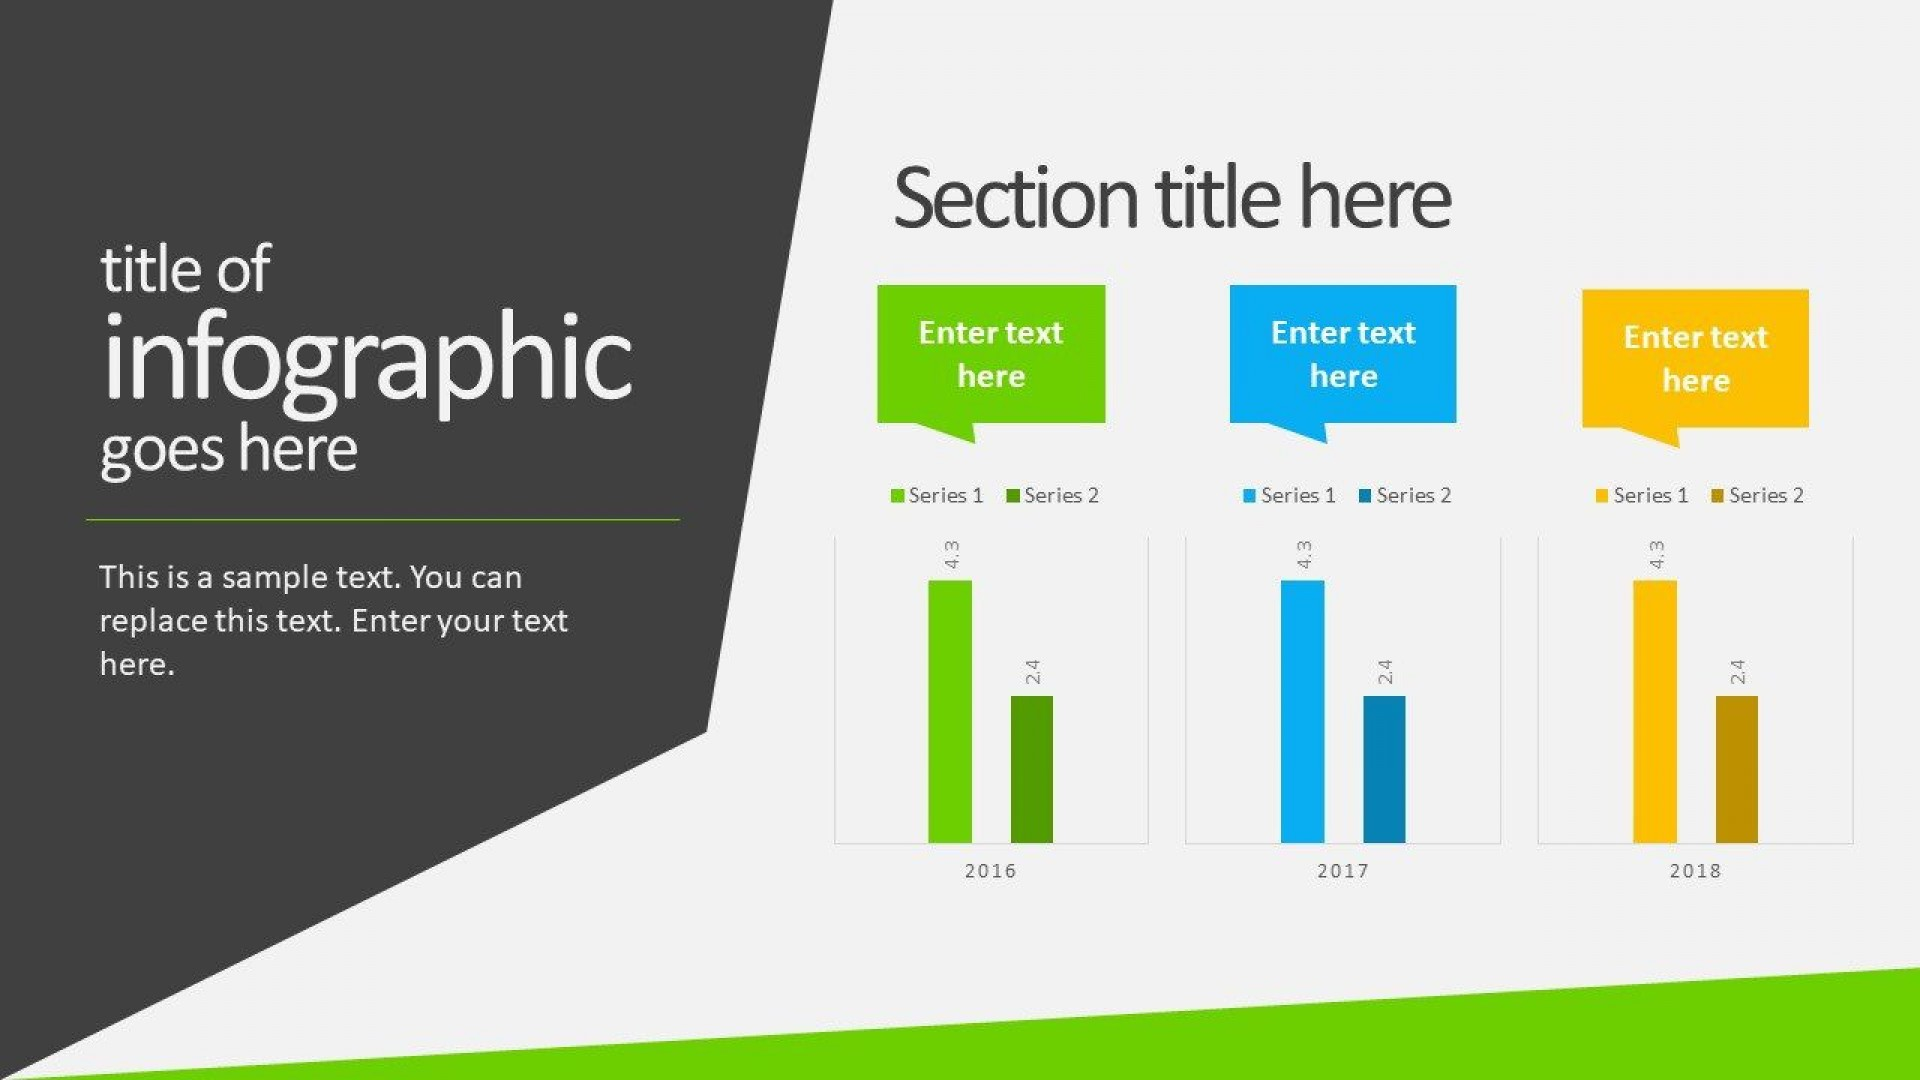 007 Sensational Animated Powerpoint Template Free Download Sample  2019 3d 2016 Education1920